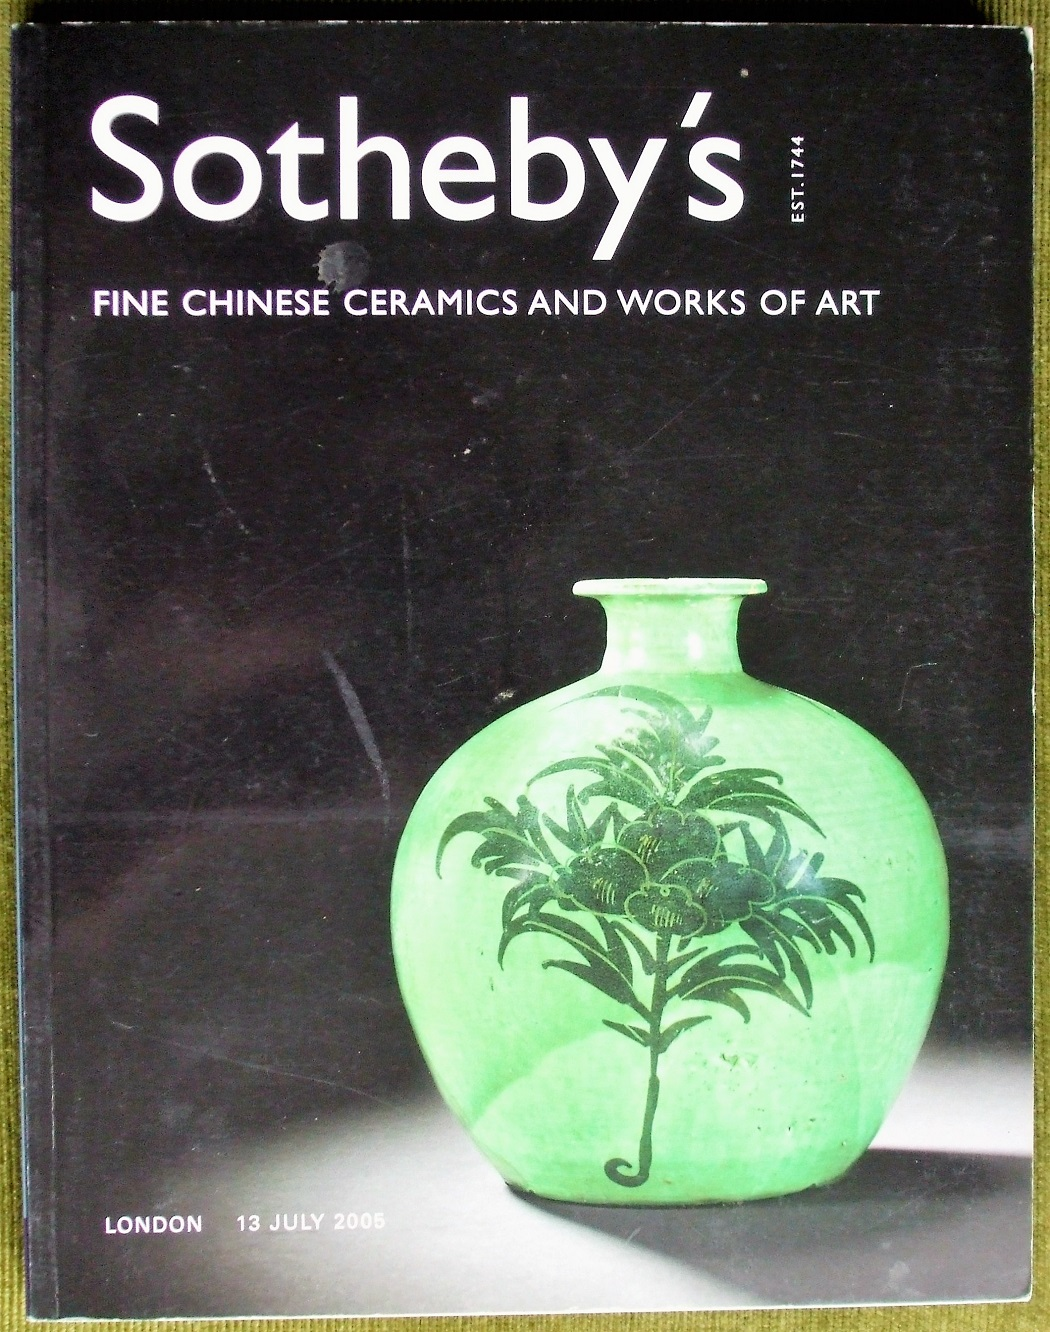 S L05211 Fine Chinese Ceramics and Works of Art L 13. 07. 2005